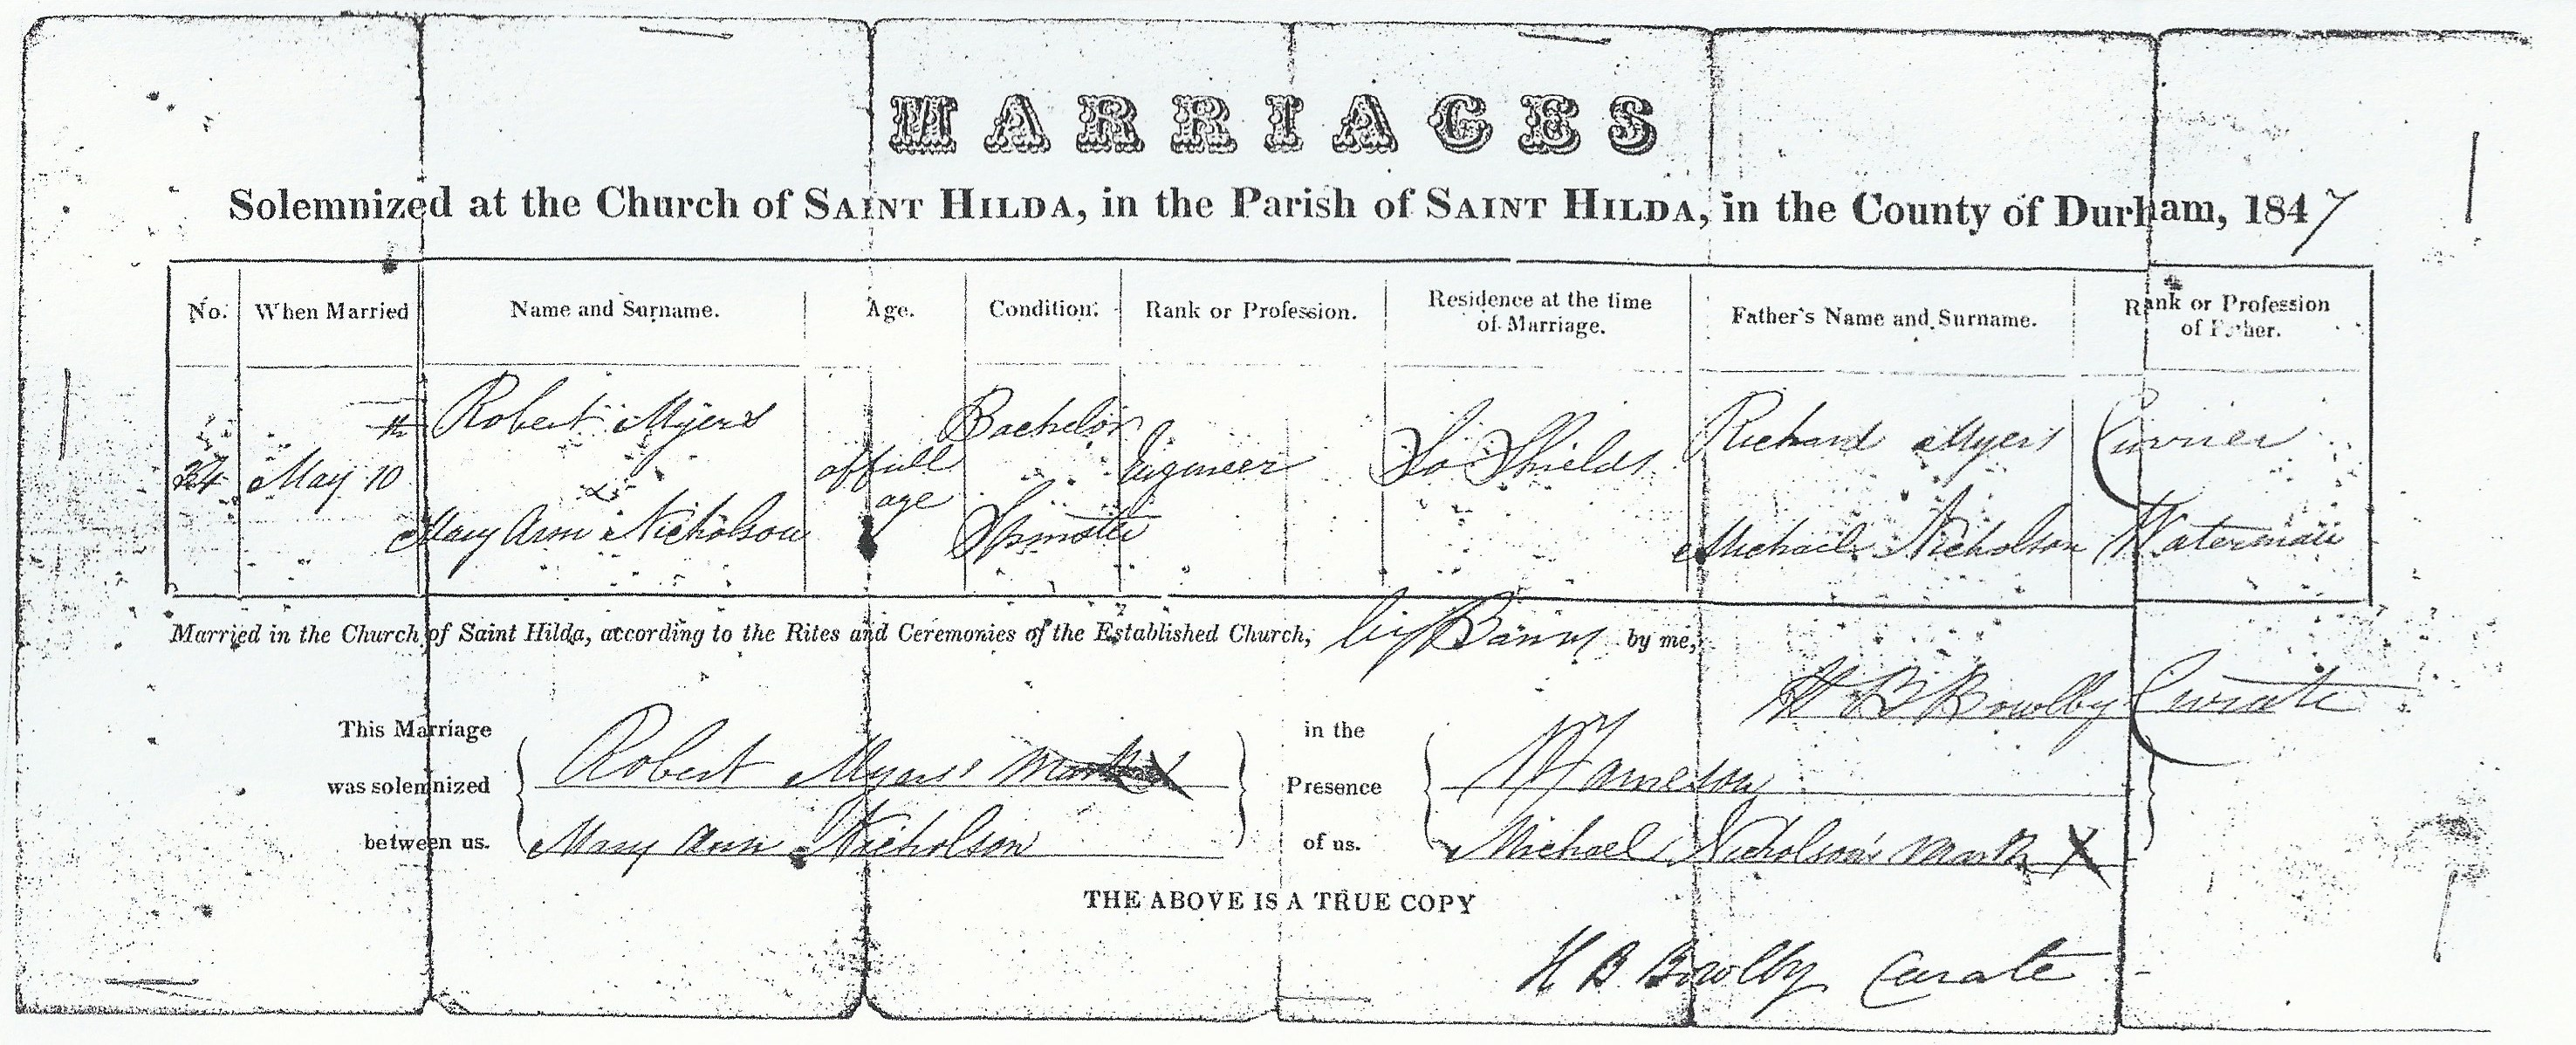 Robert Myers Mary Ann Nicholson - Marriage Certifi